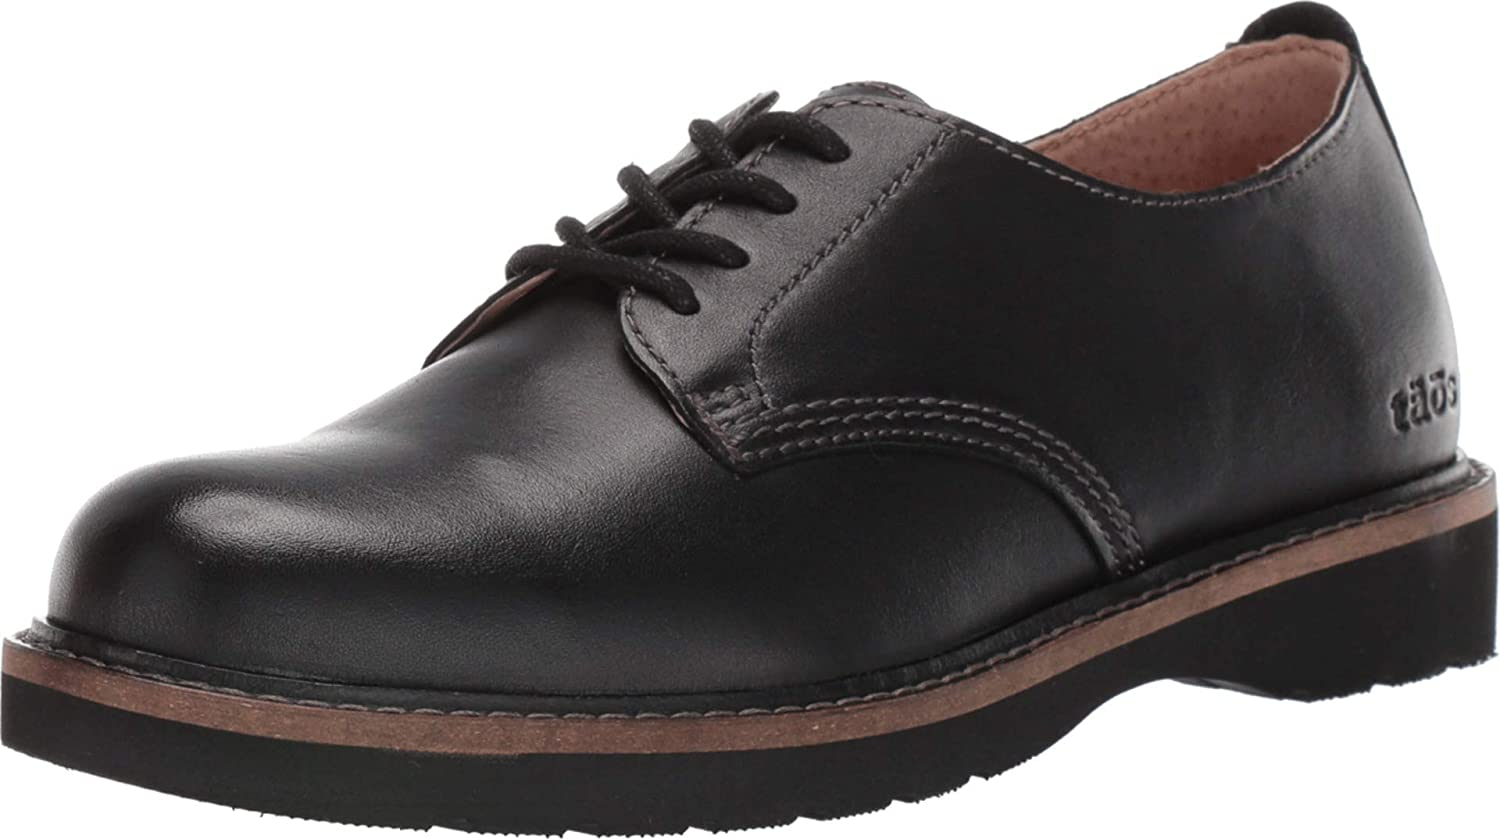 Free shipping anywhere in the nation Taos Footwear famous Women's Oxford Work It